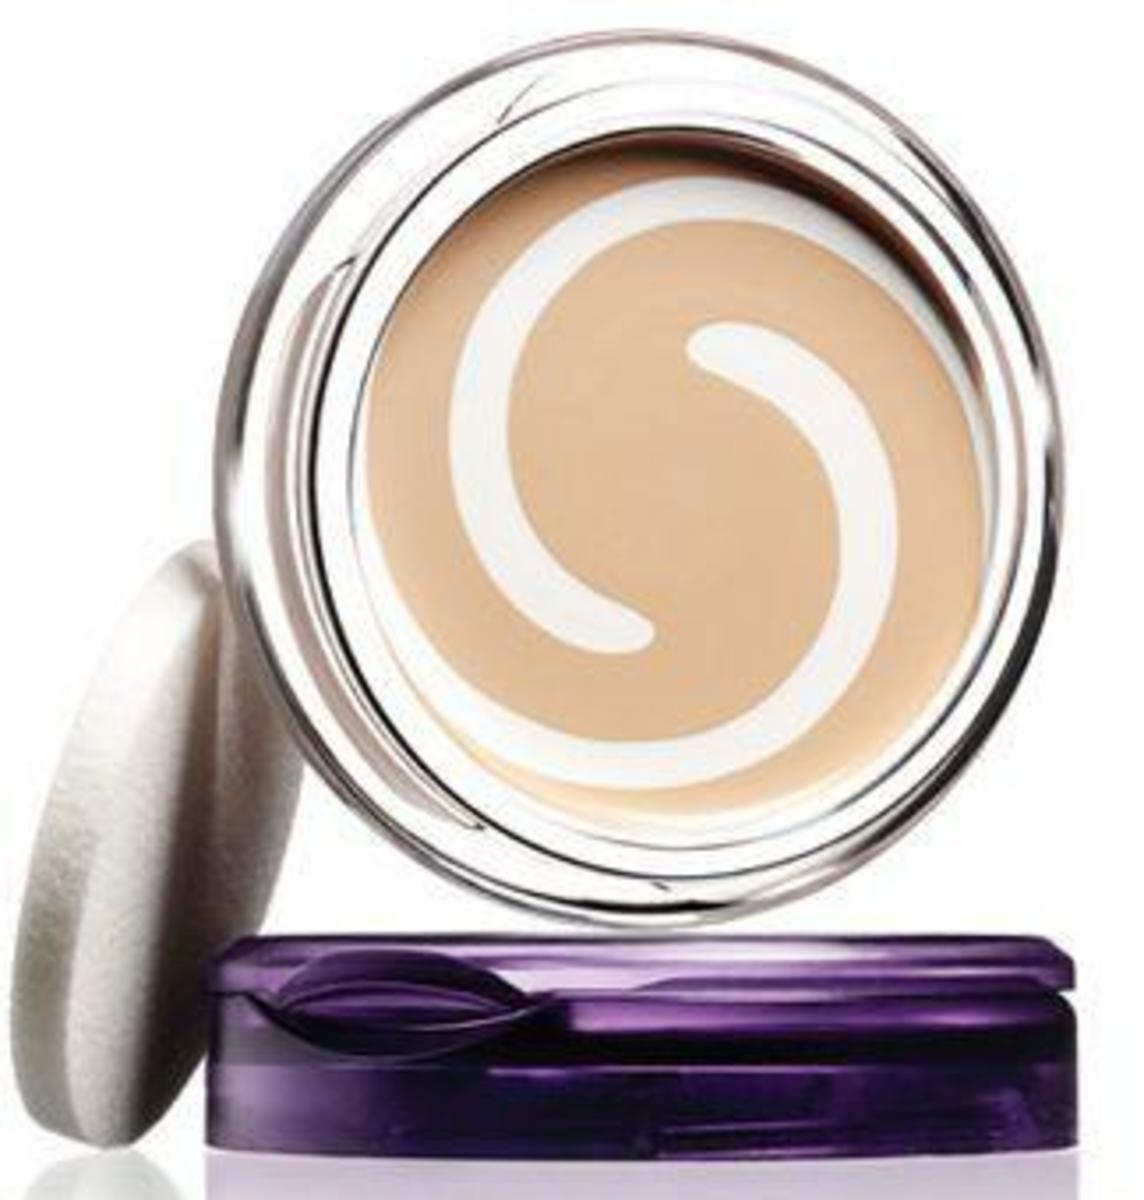 CoverGirl-Olay-Simply-Ageless-Concealer